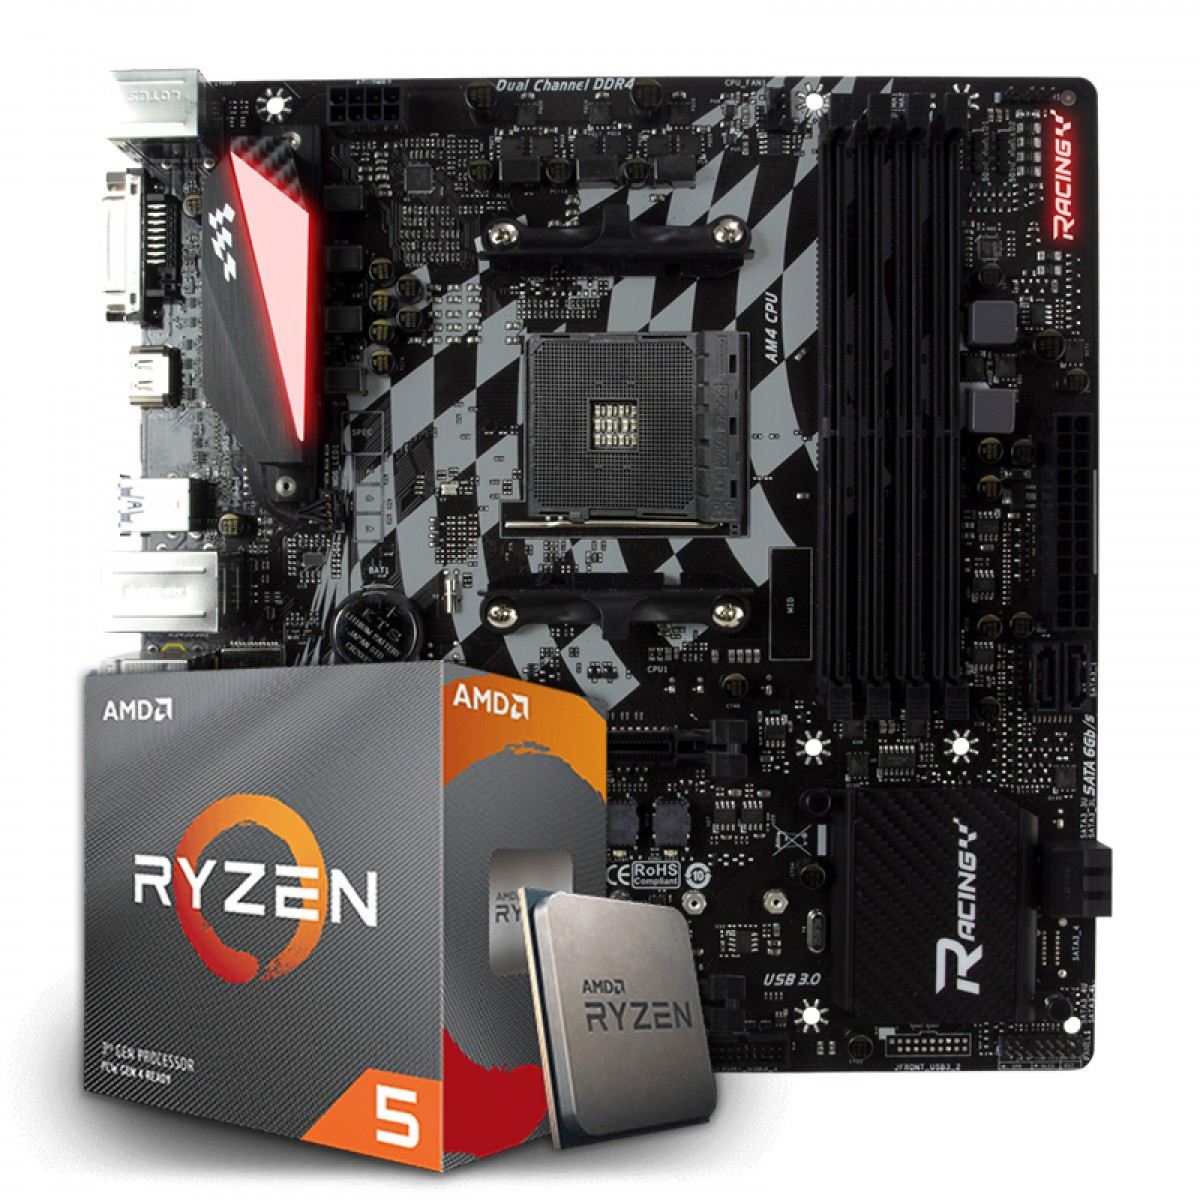 Kit Upgrade Placa Mãe Biostar Racing B350GT3, AMD AM4 + Processador AMD Ryzen 5 3600x 3.8ghz